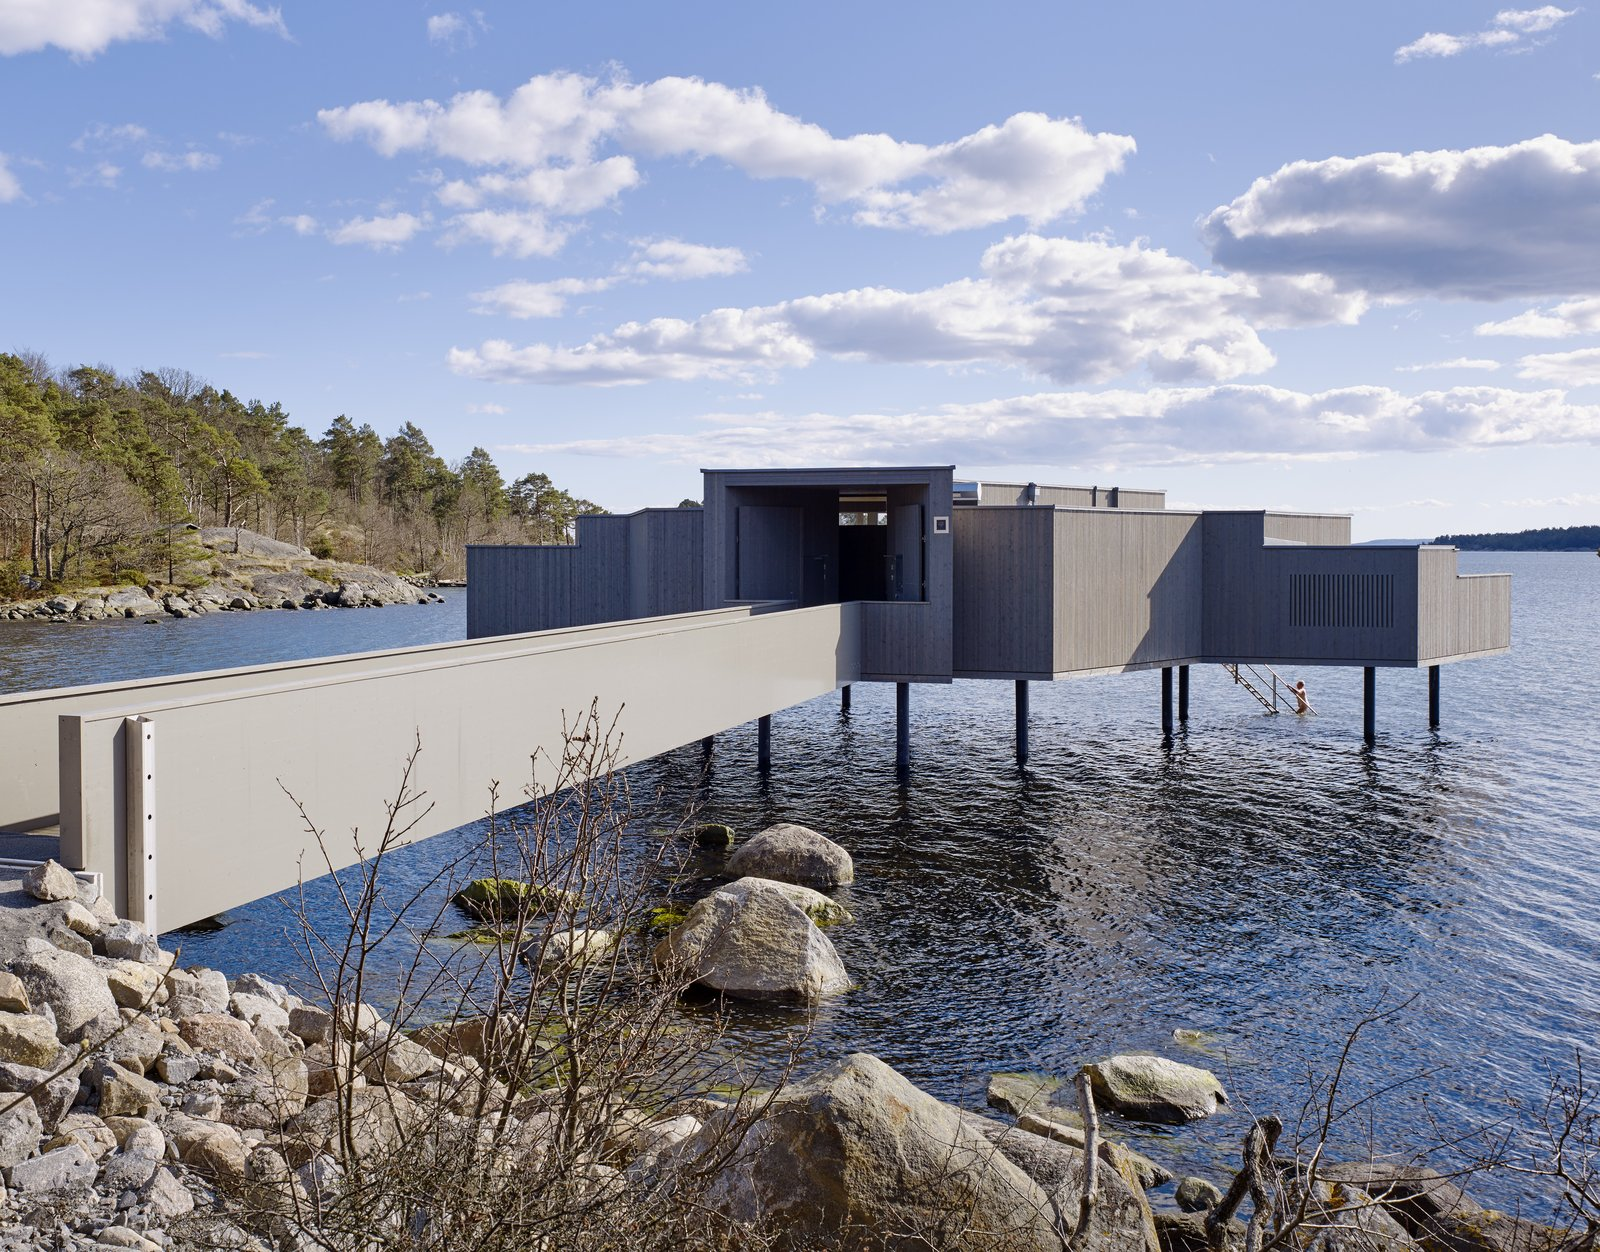 Photo 6 of 6 in A Swedish Coastal Town Commissions an Otherworldly Bathhouse